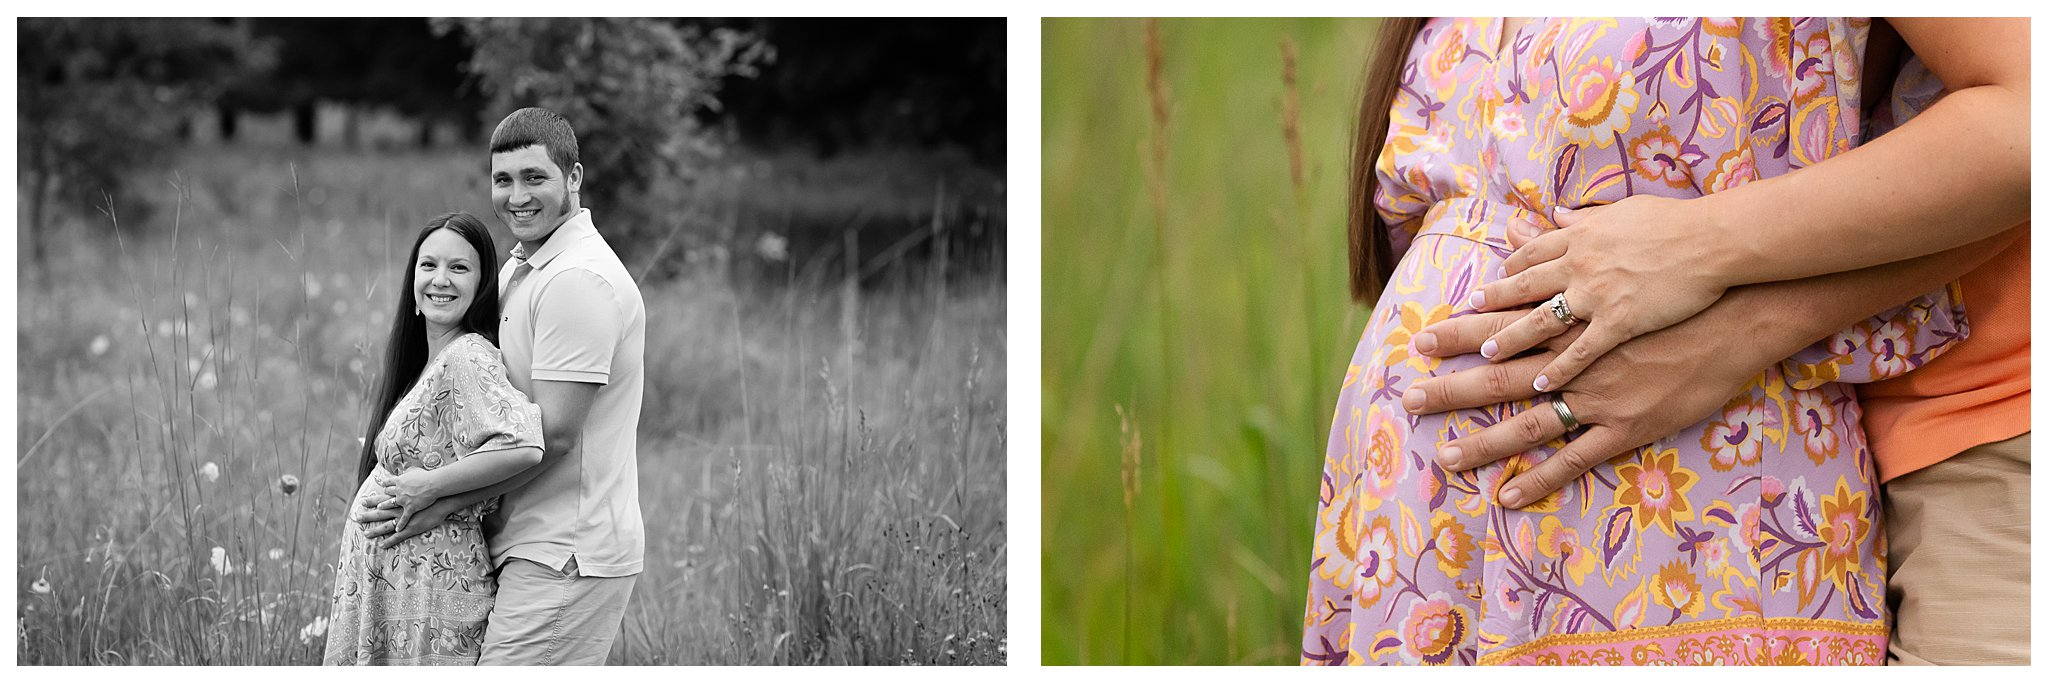 Ann Arbor Family Photographer | Pregnancy Announcement Photos